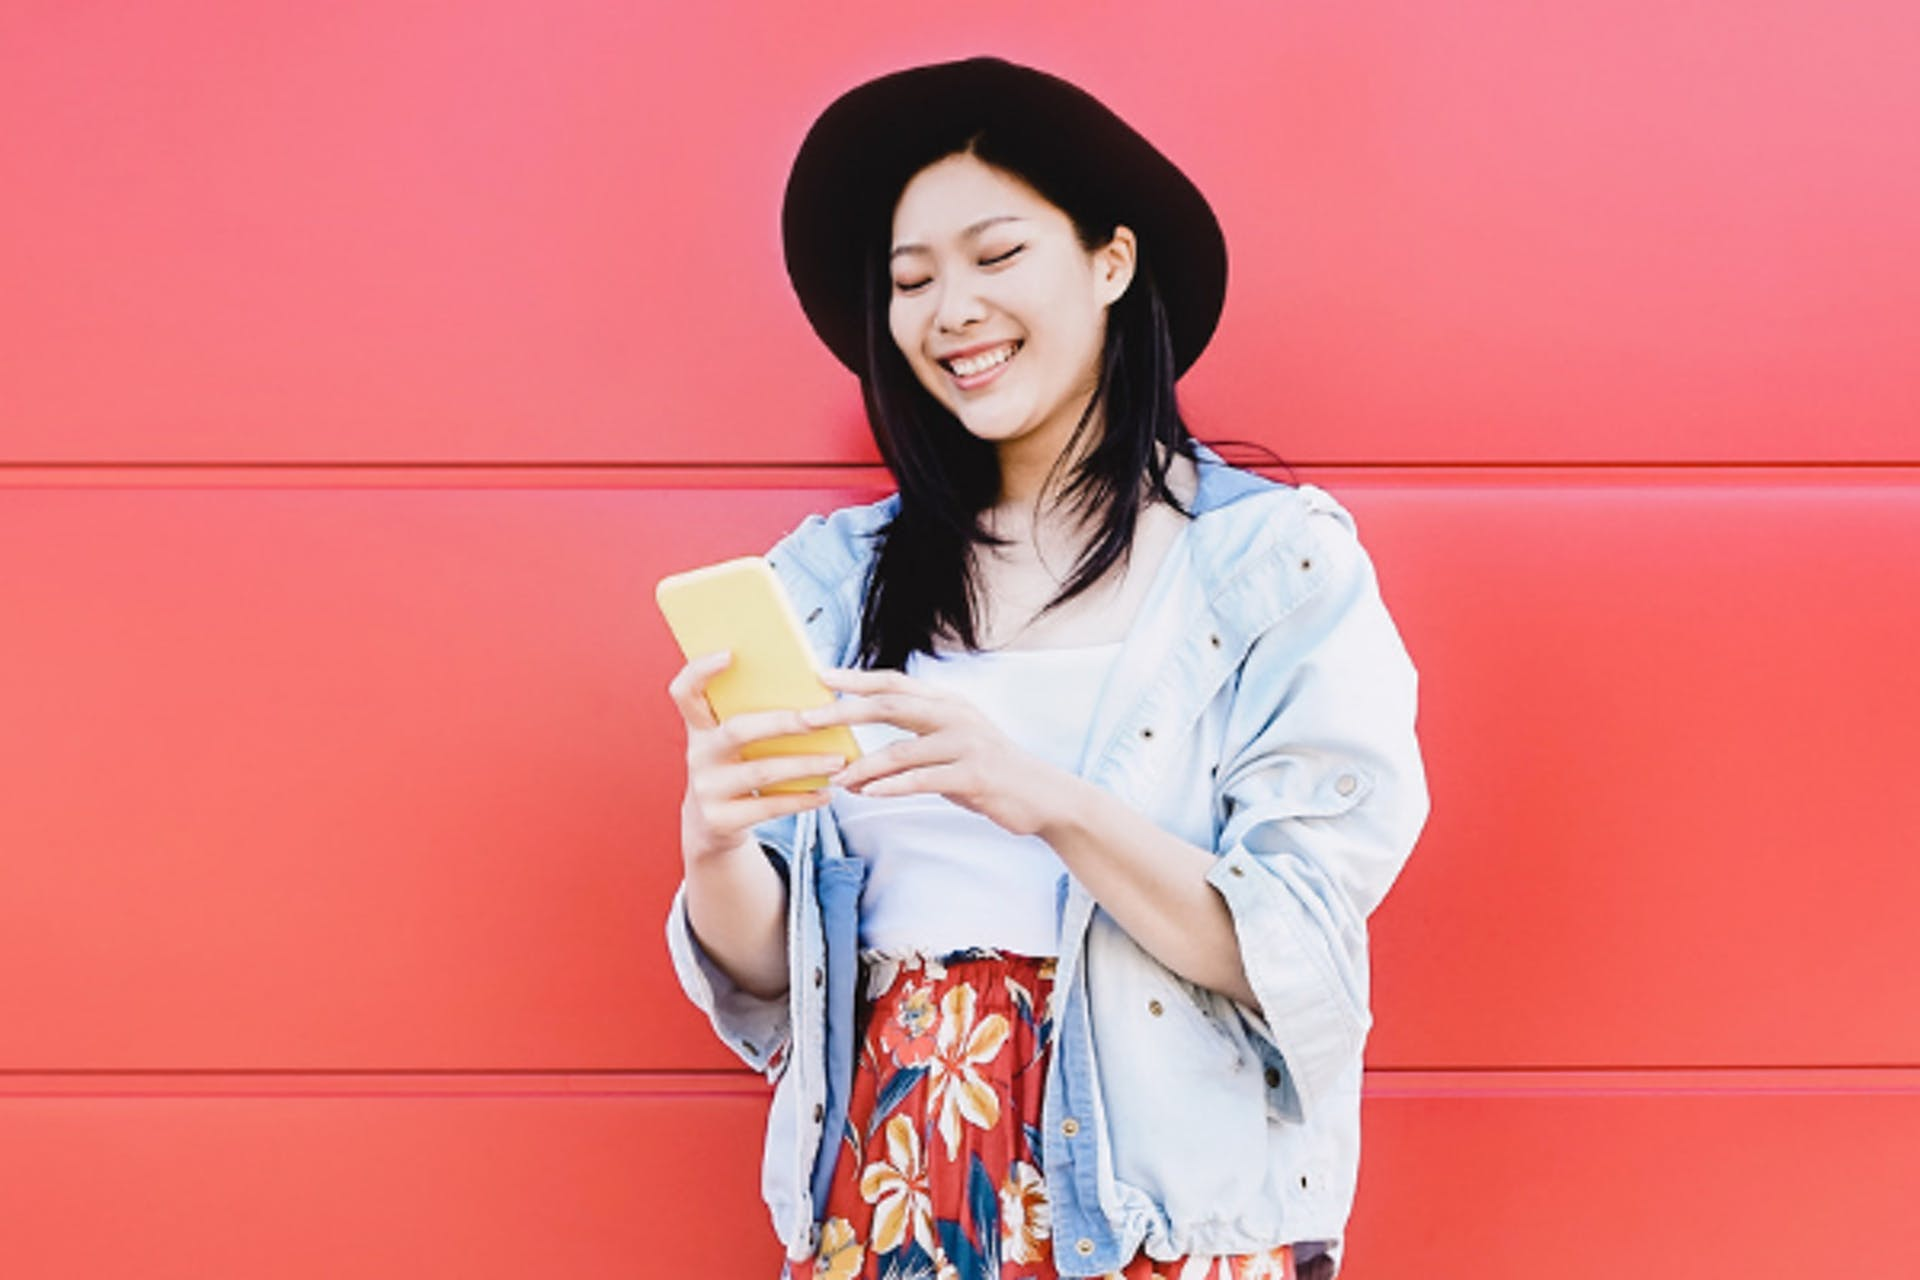 Young, smiling woman looking at her cell phone.